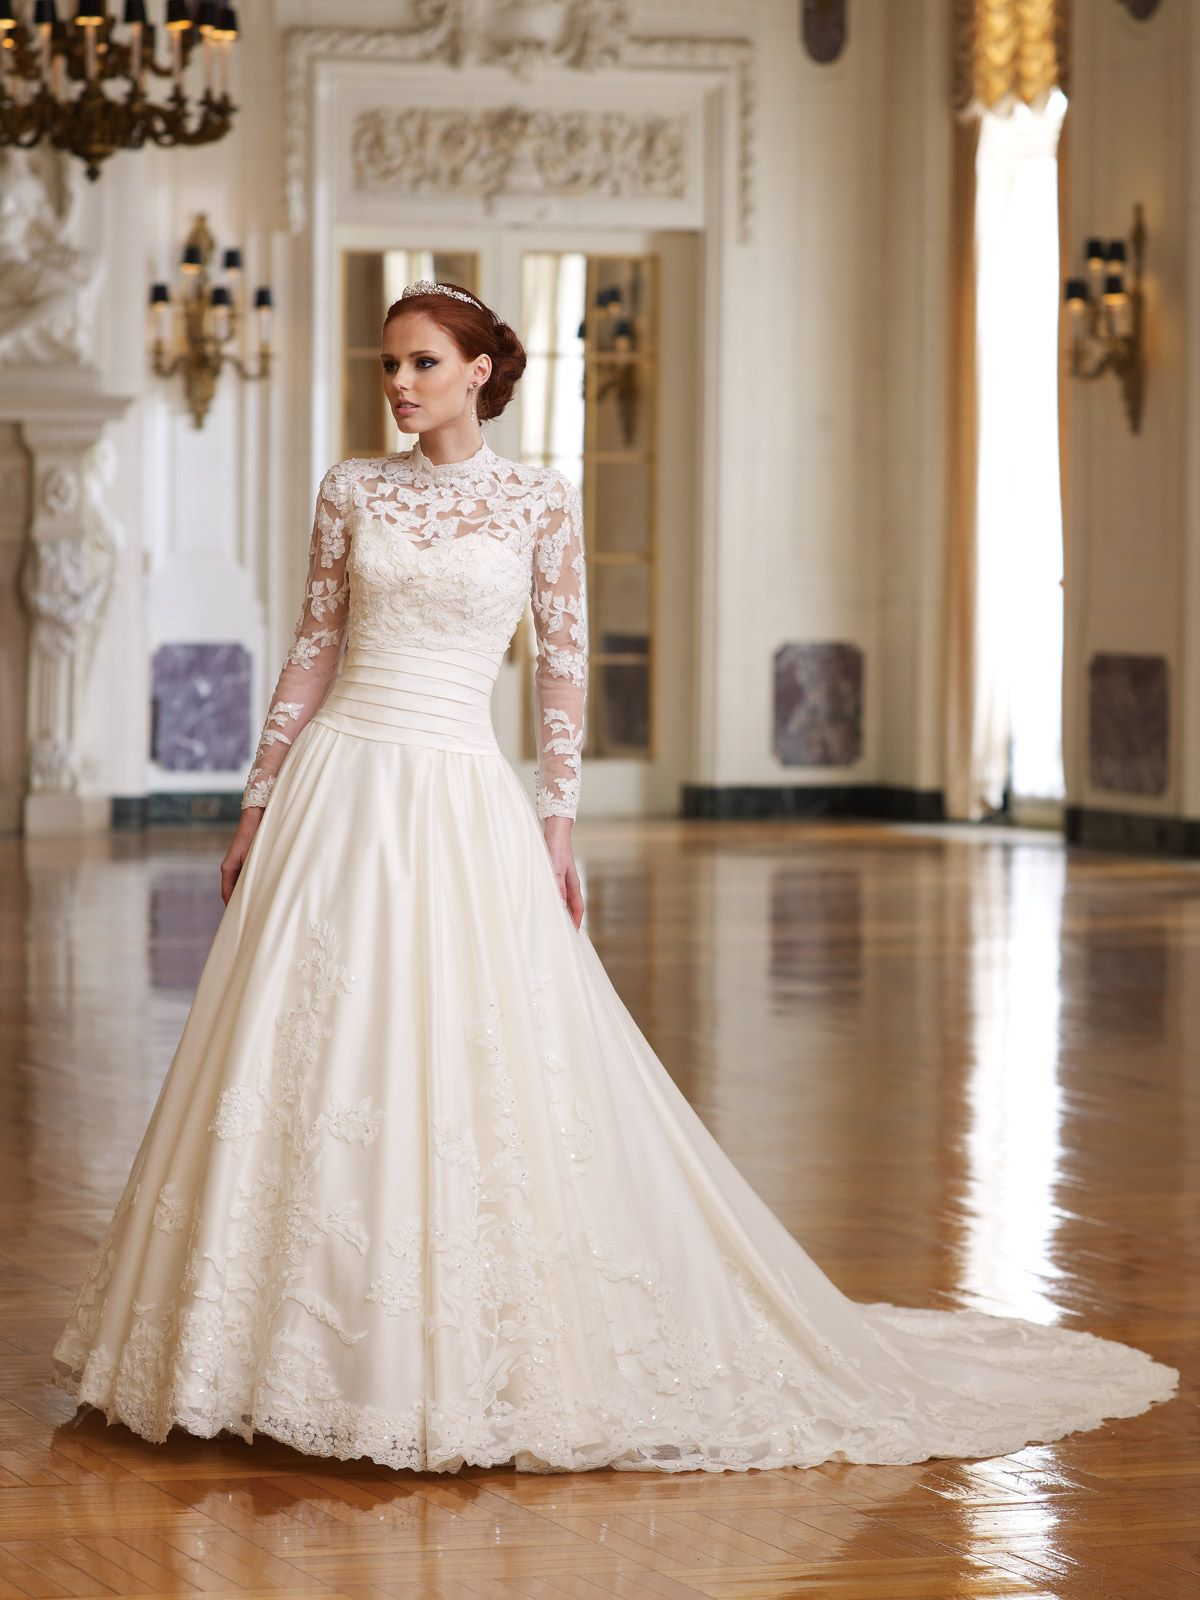 Wedding Long Dresses For Wedding wedding dress long sleeves sophia tolli fabiana y11005 y11005